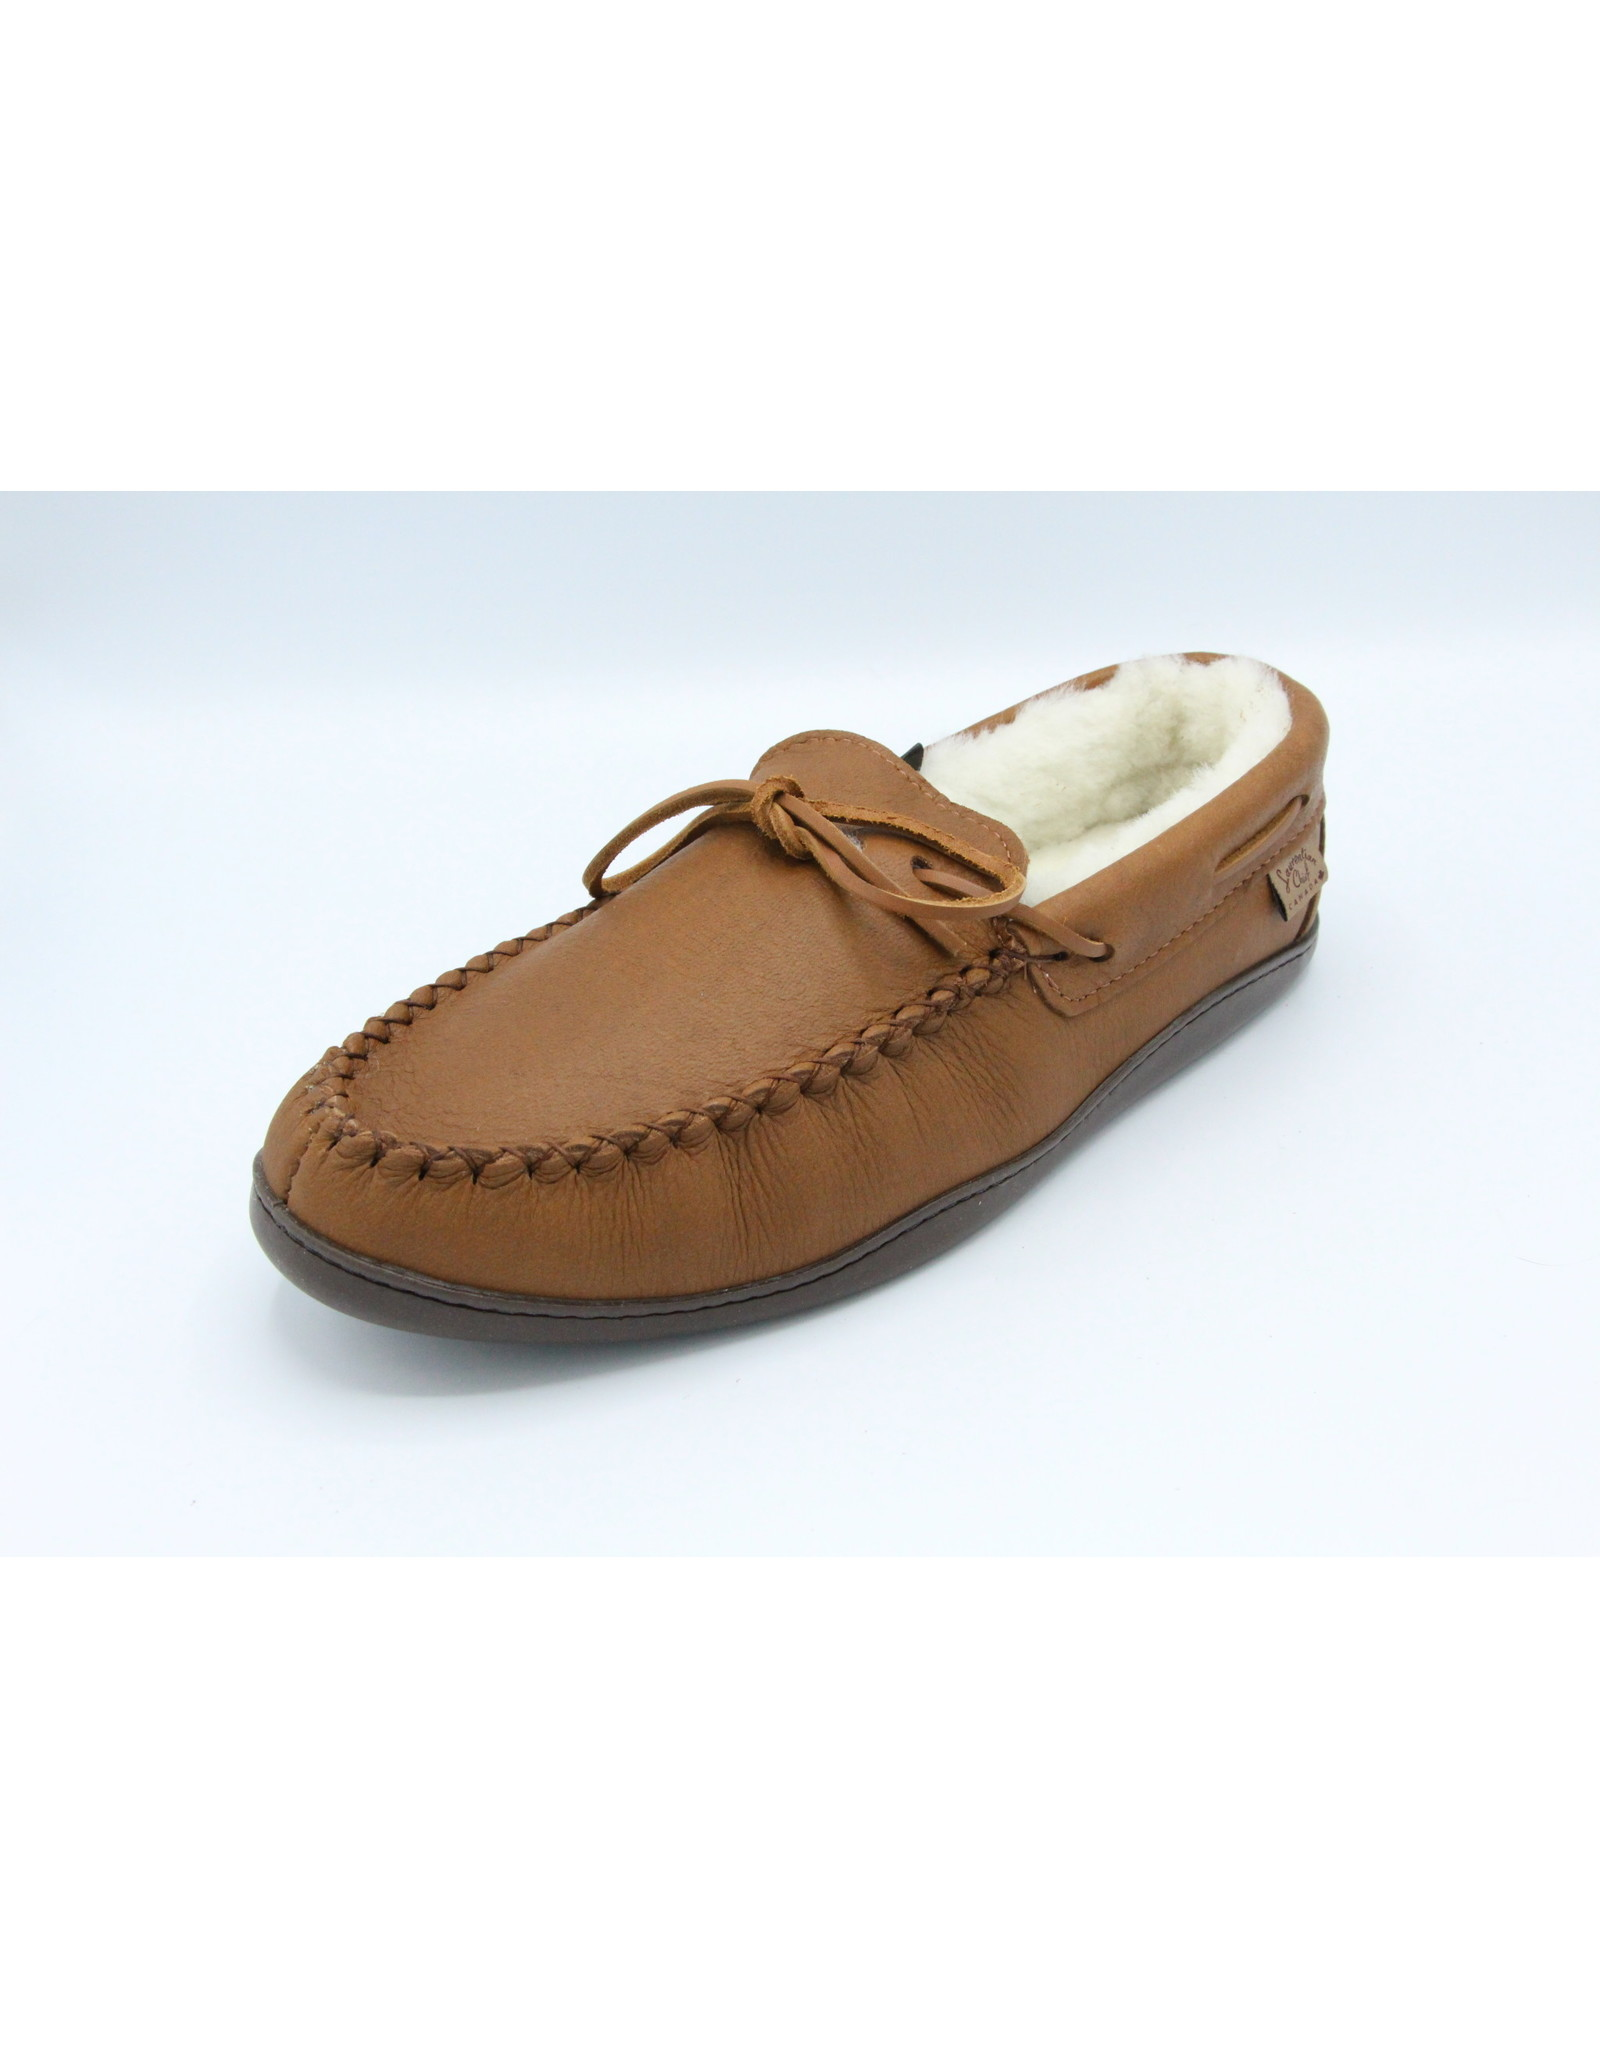 Wool Lined Moose Hide Moccasin